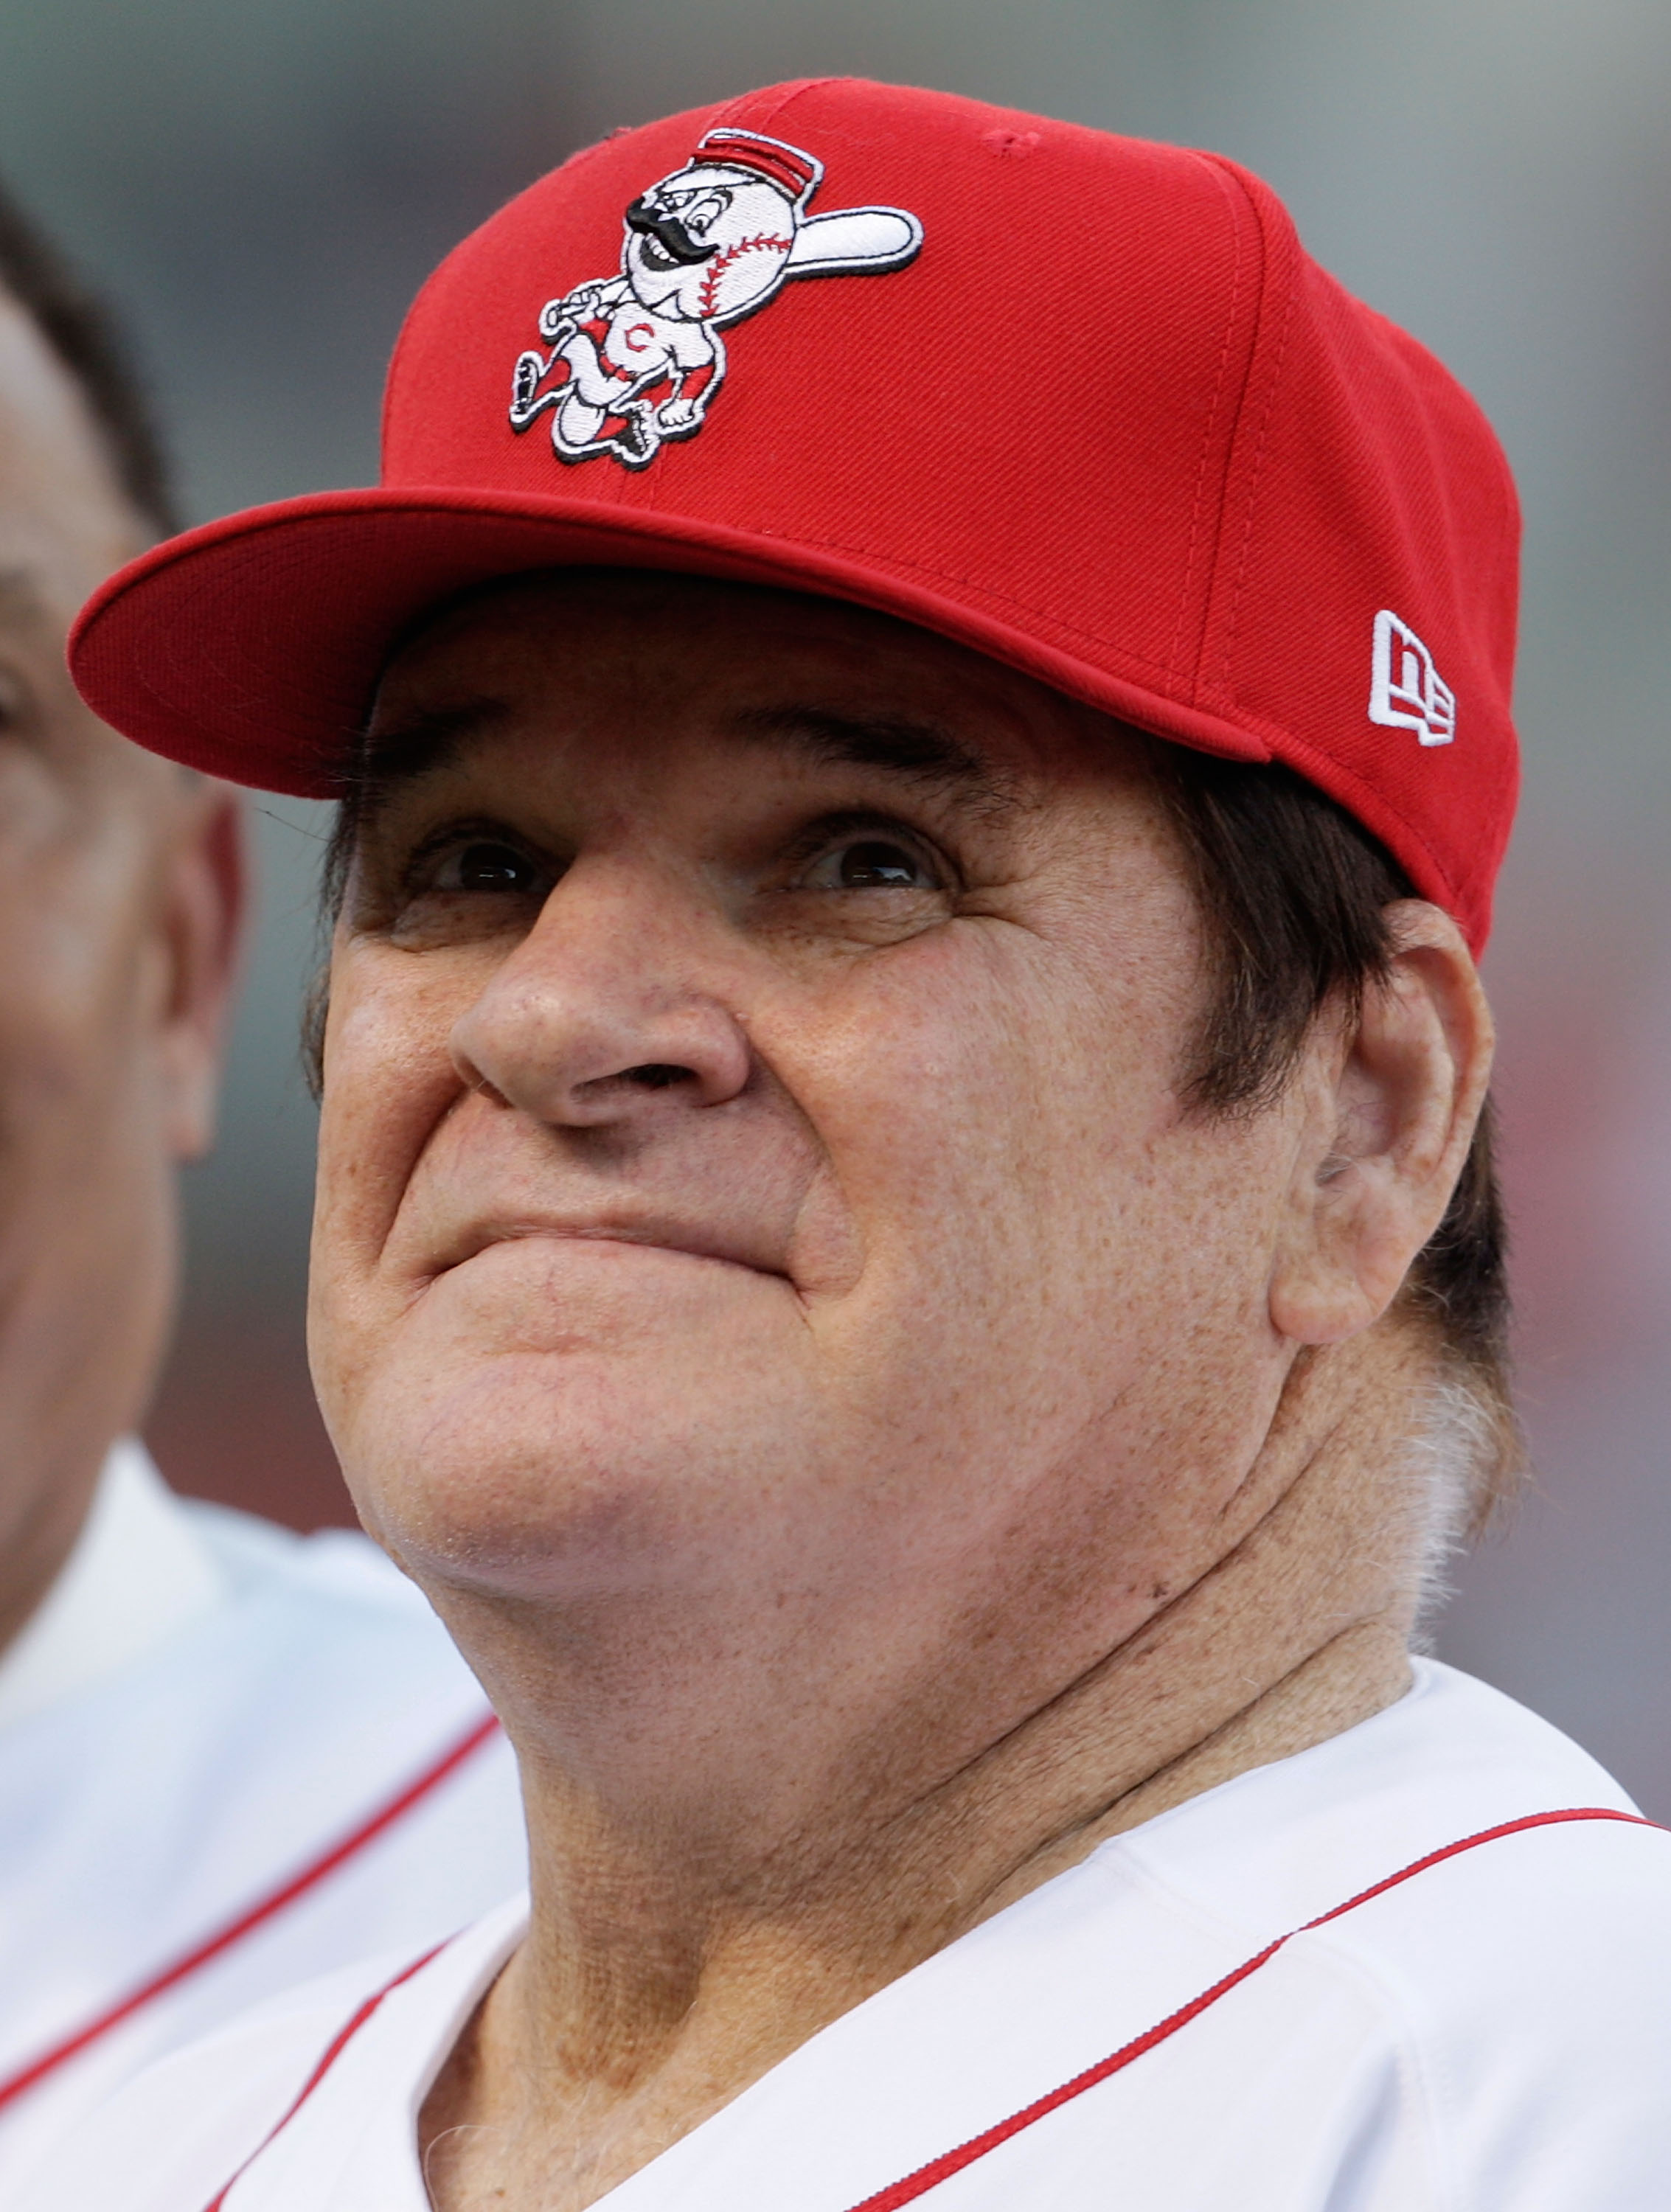 CINCINNATI - SEPTEMBER 11:  Pete Rose takes part in the ceremony celebrating the 25th anniversary of his breaking the career hit record of 4,192 on September 11, 2010 at Great American Ball Park in Cincinnati, Ohio. Rose was honored before the start of th